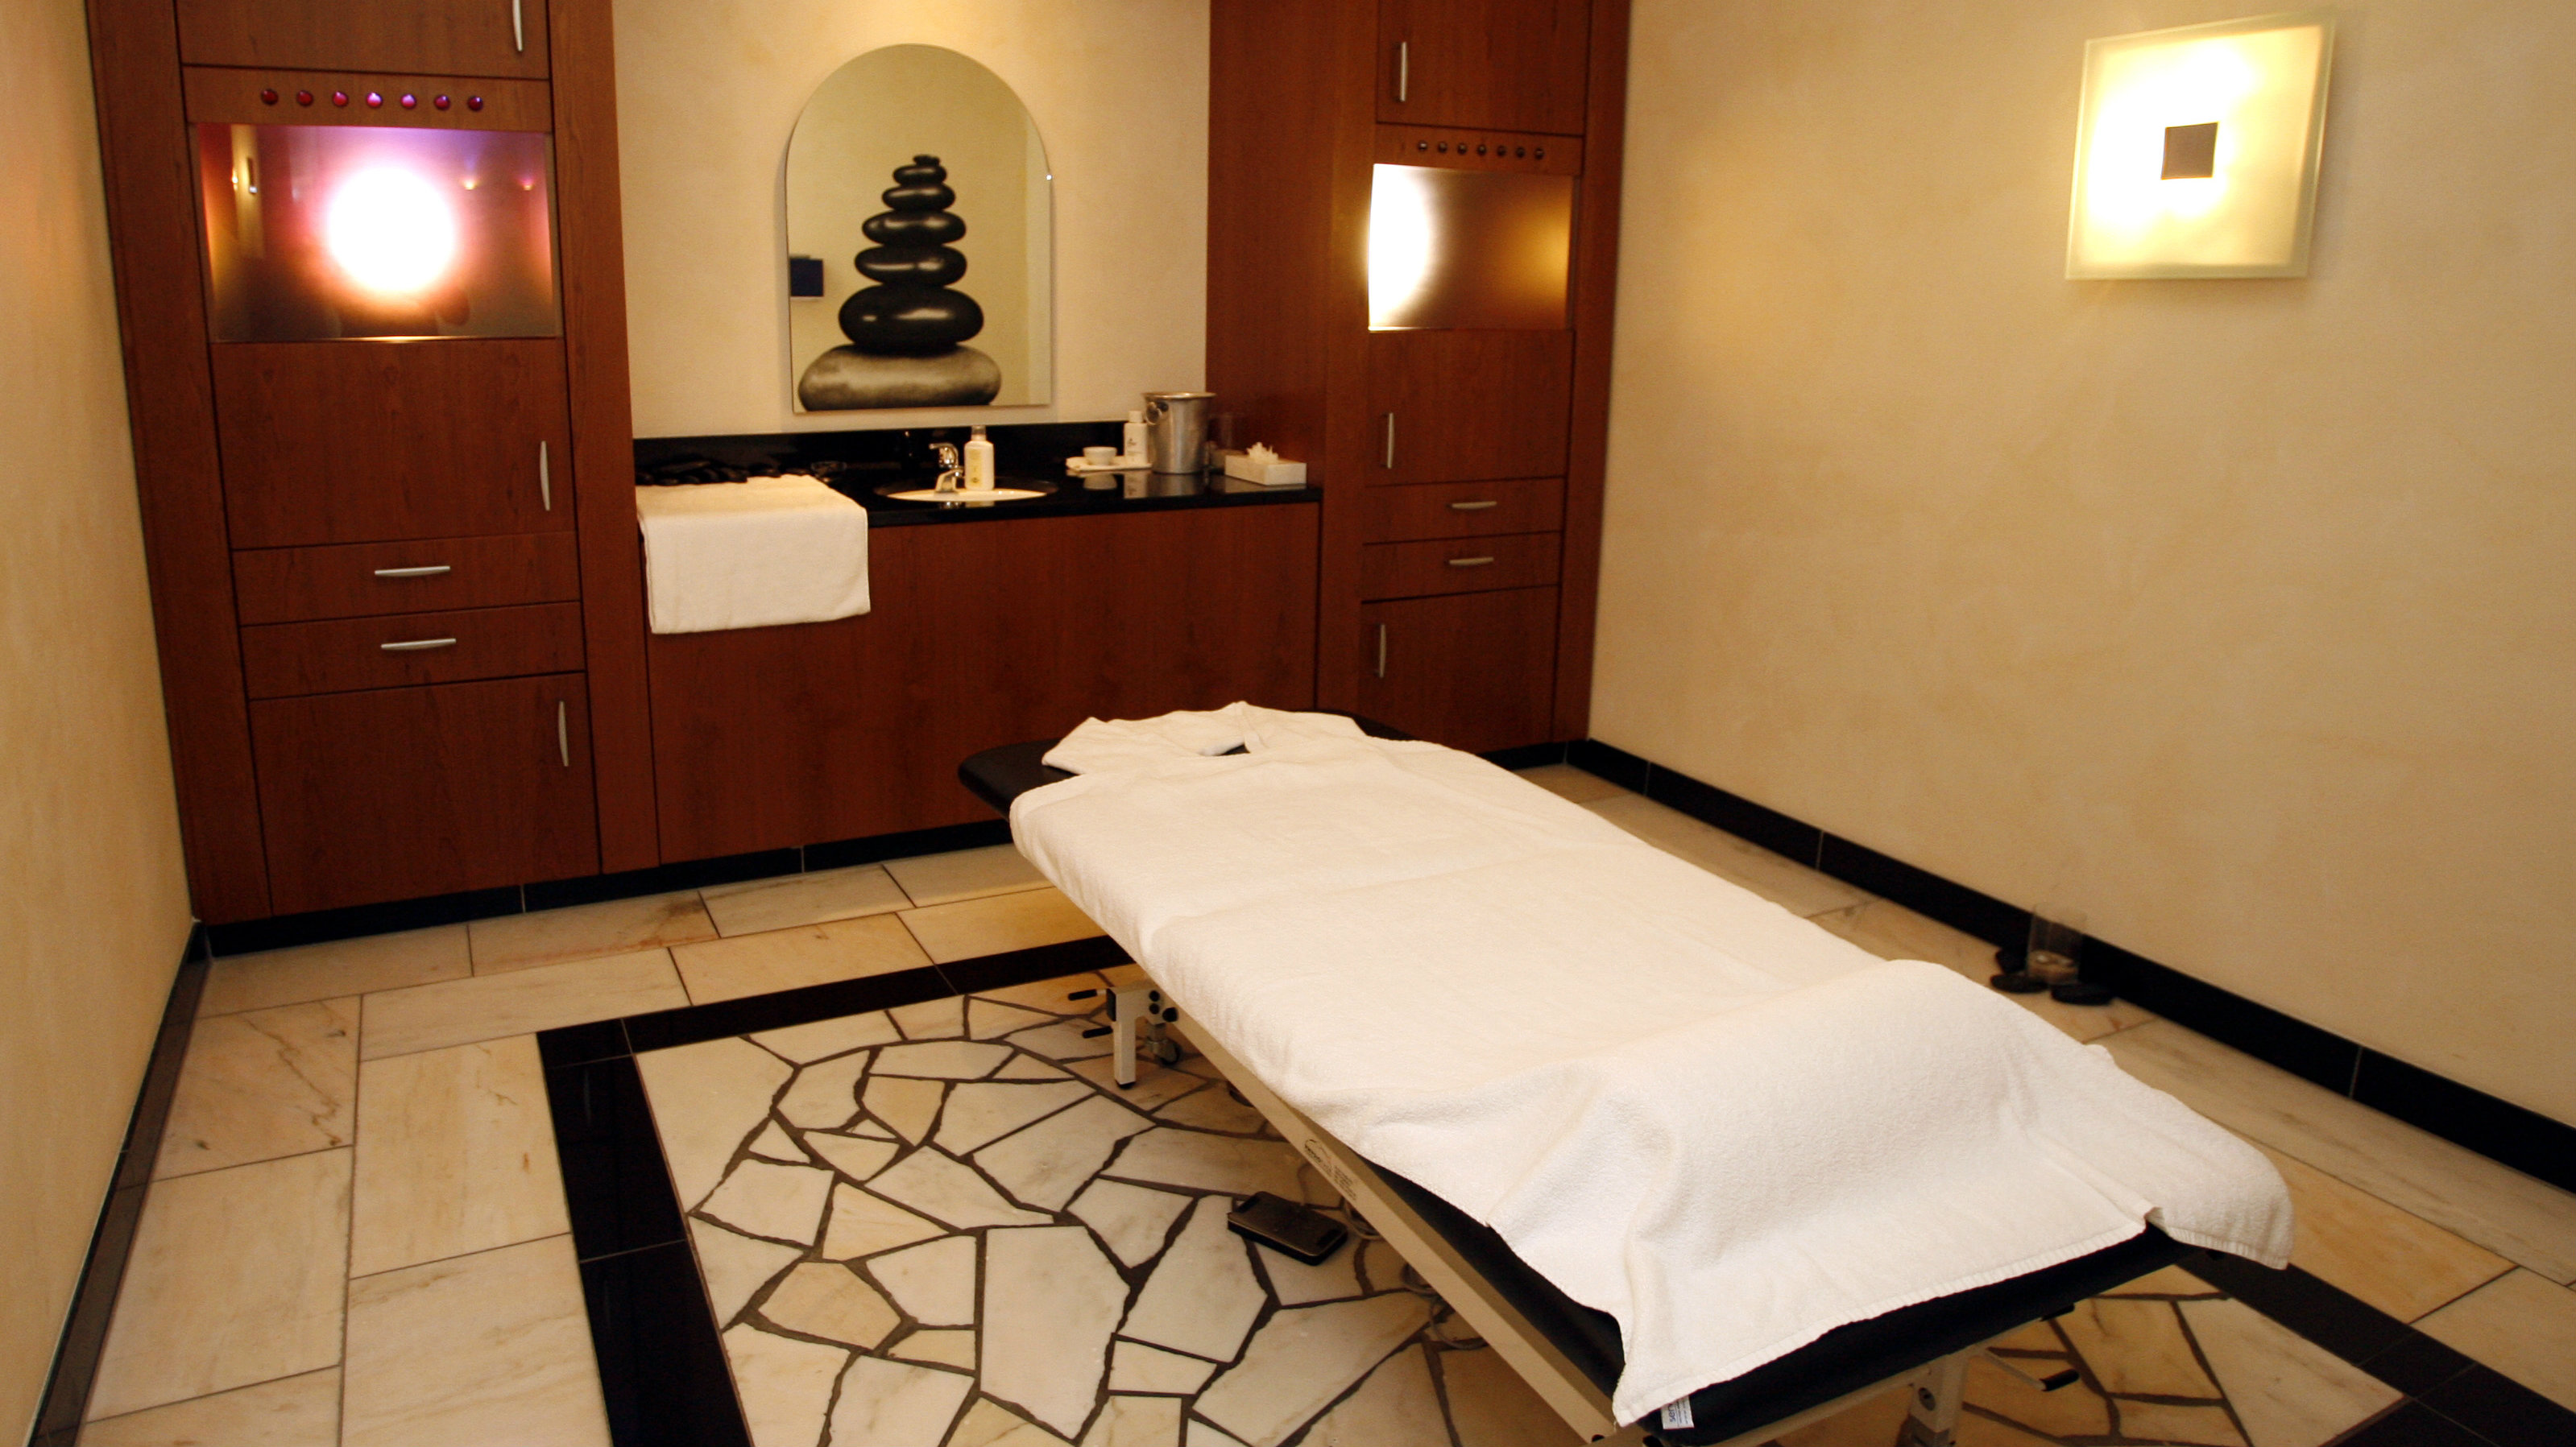 An interior view shows a massage bench in the wellness area of a hotel.